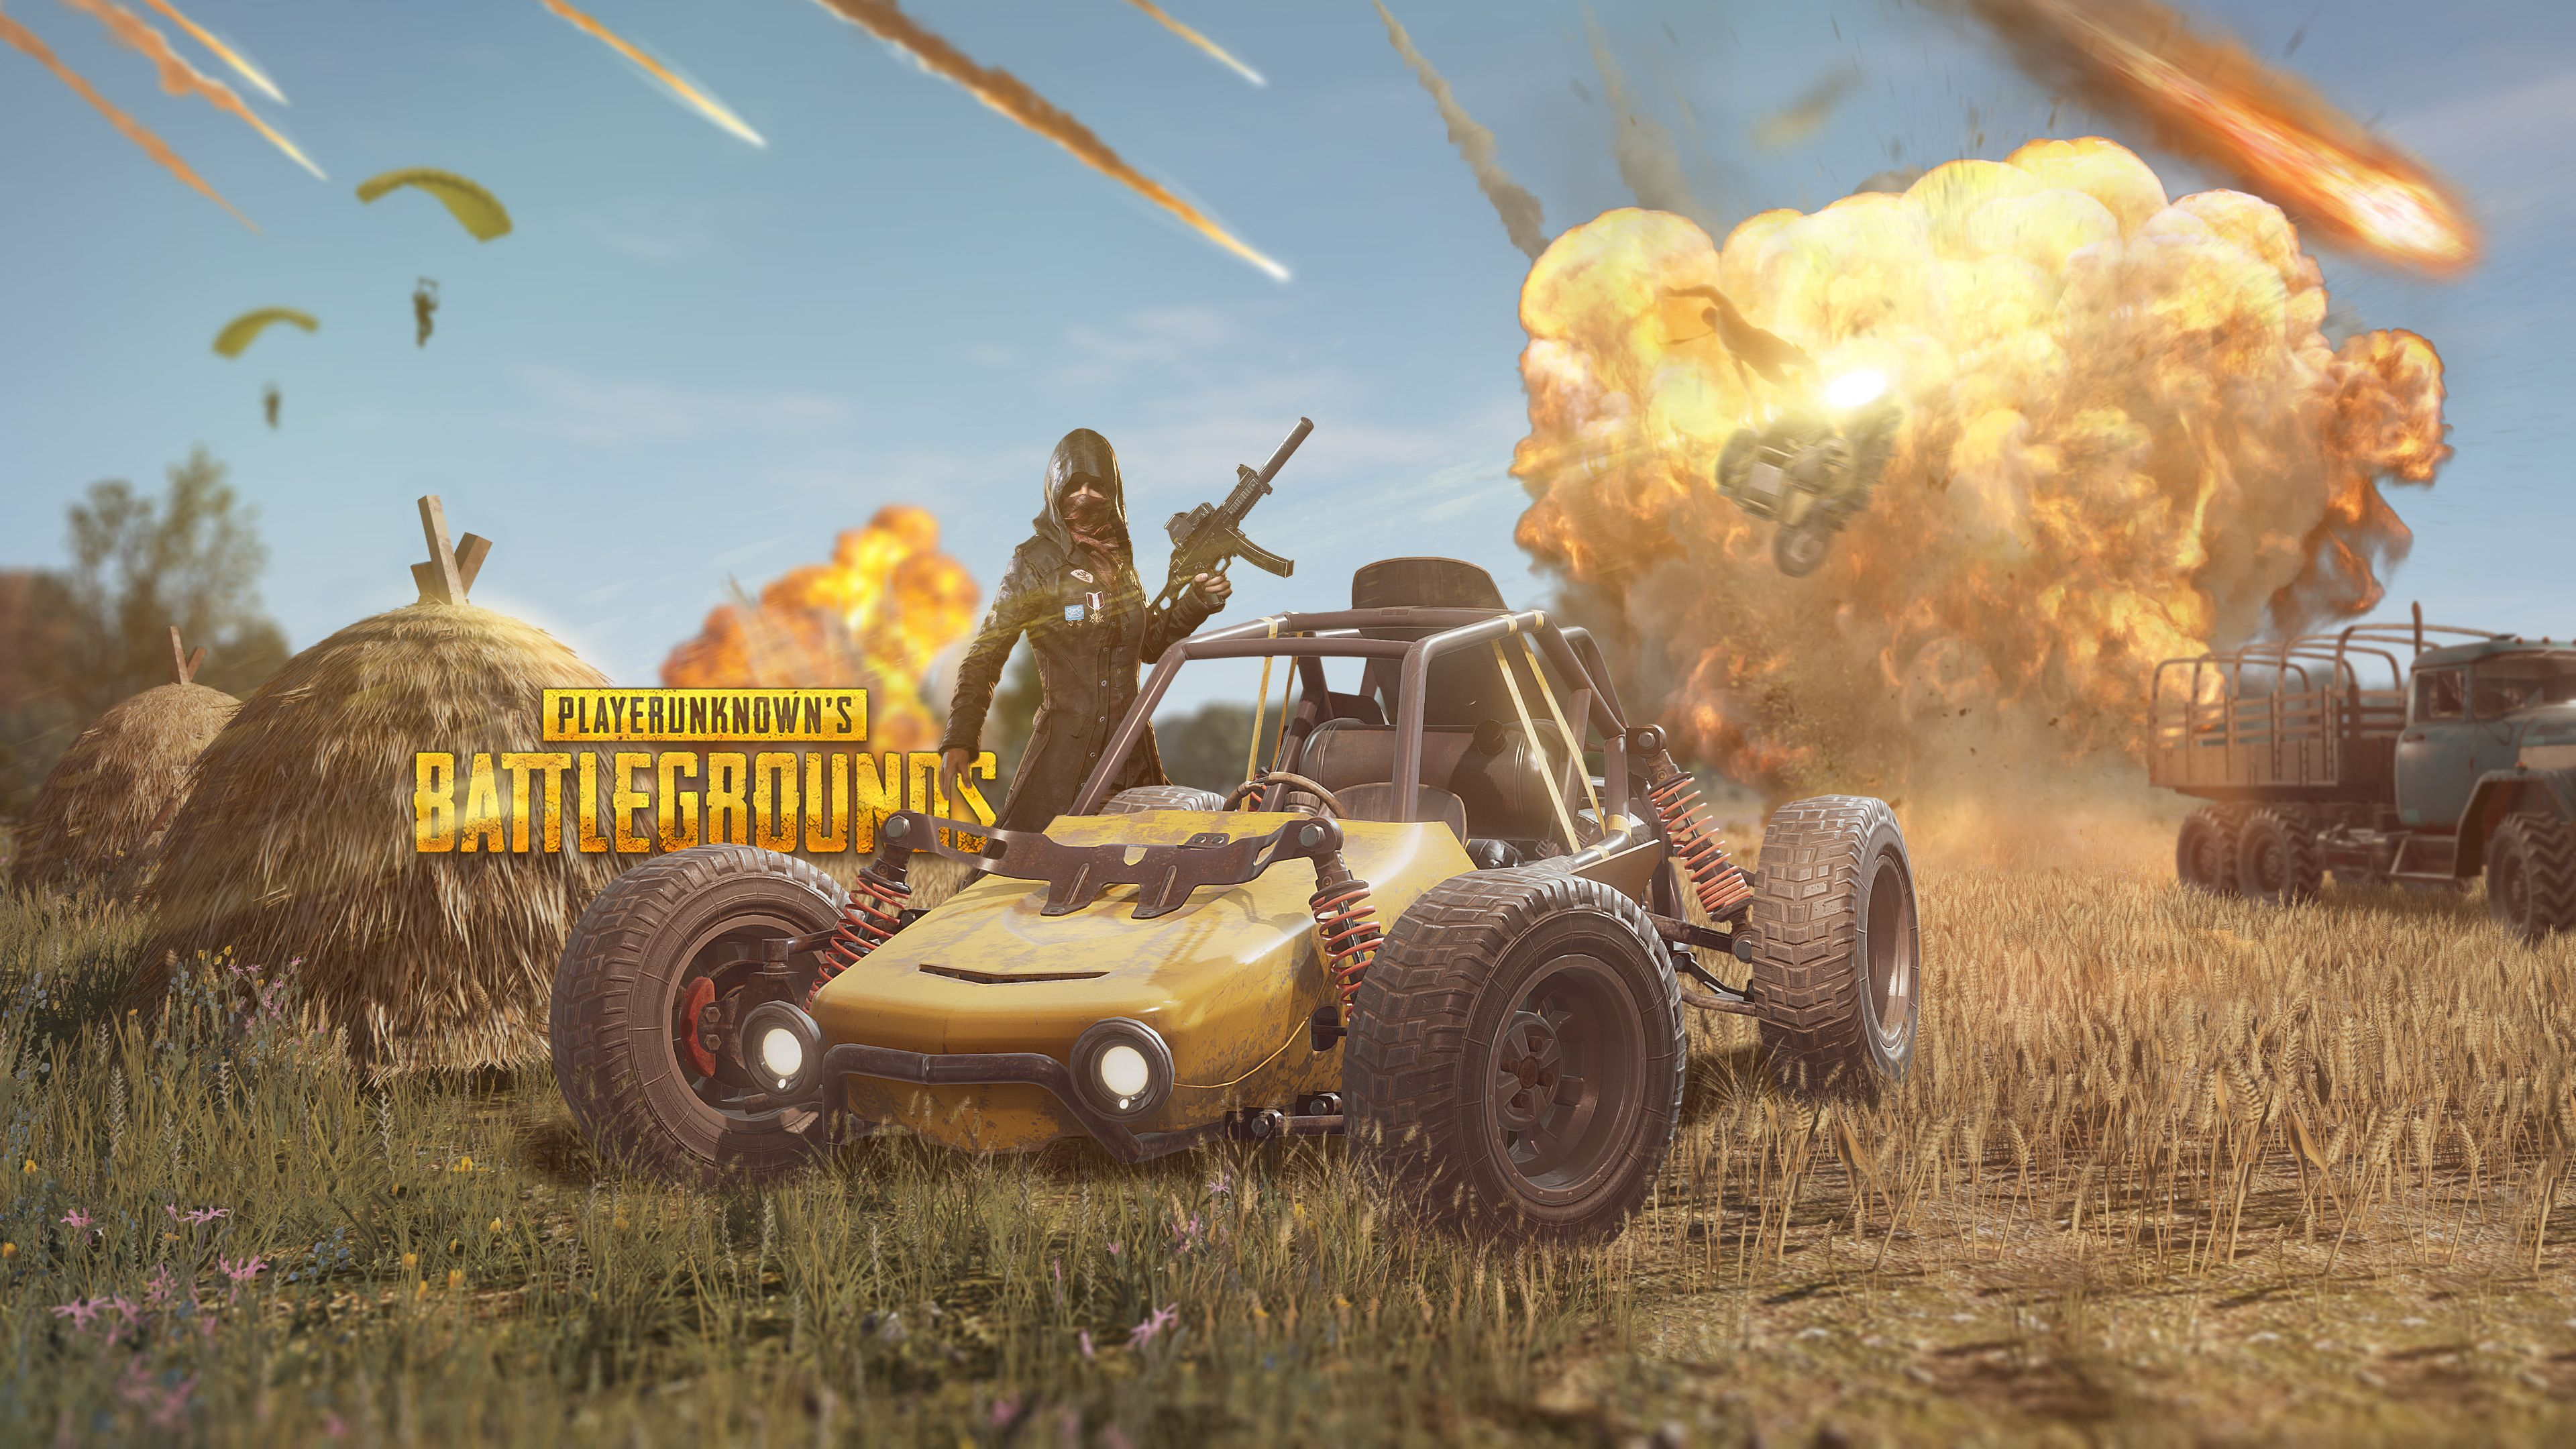 Pubg Hd Pics For Mobile: Pubg Wallpapers Widescreen On Wallpaper 1080p HD